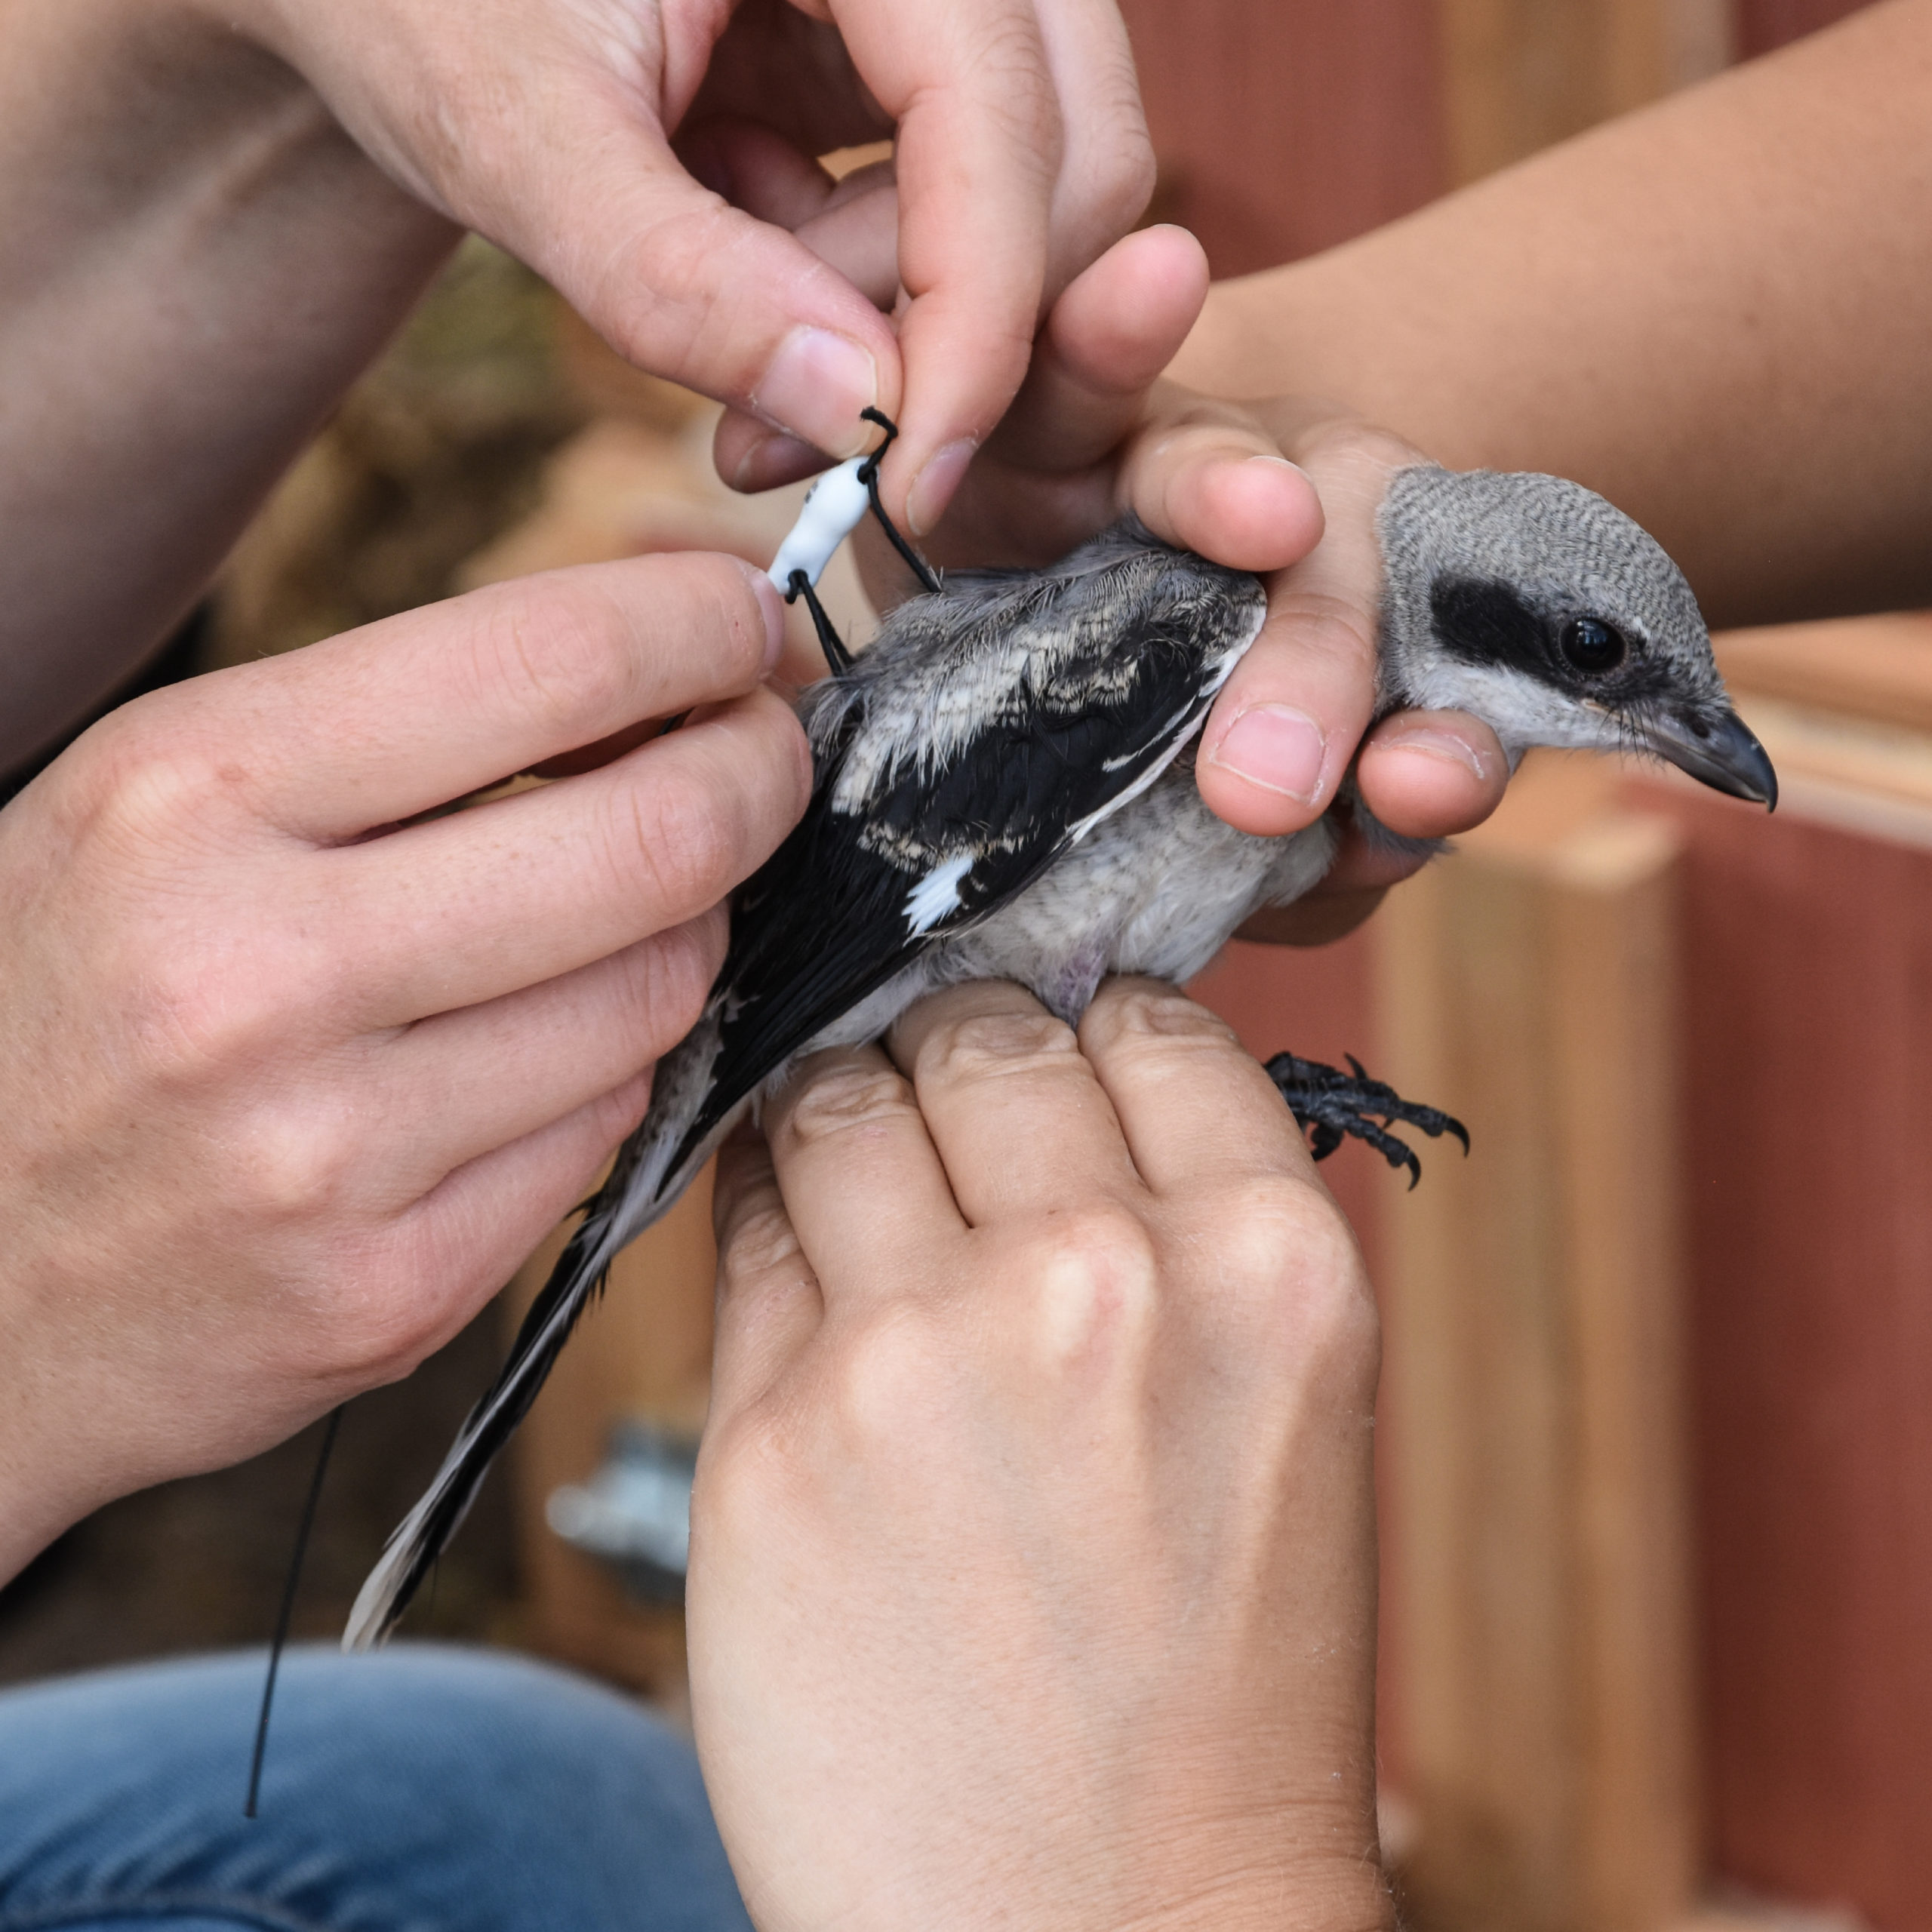 A young eastern loggerhead shrike being fitted with a radio-transmitter so we can track her migration routes after release. This transmitter is designed to fall off after 6 months.